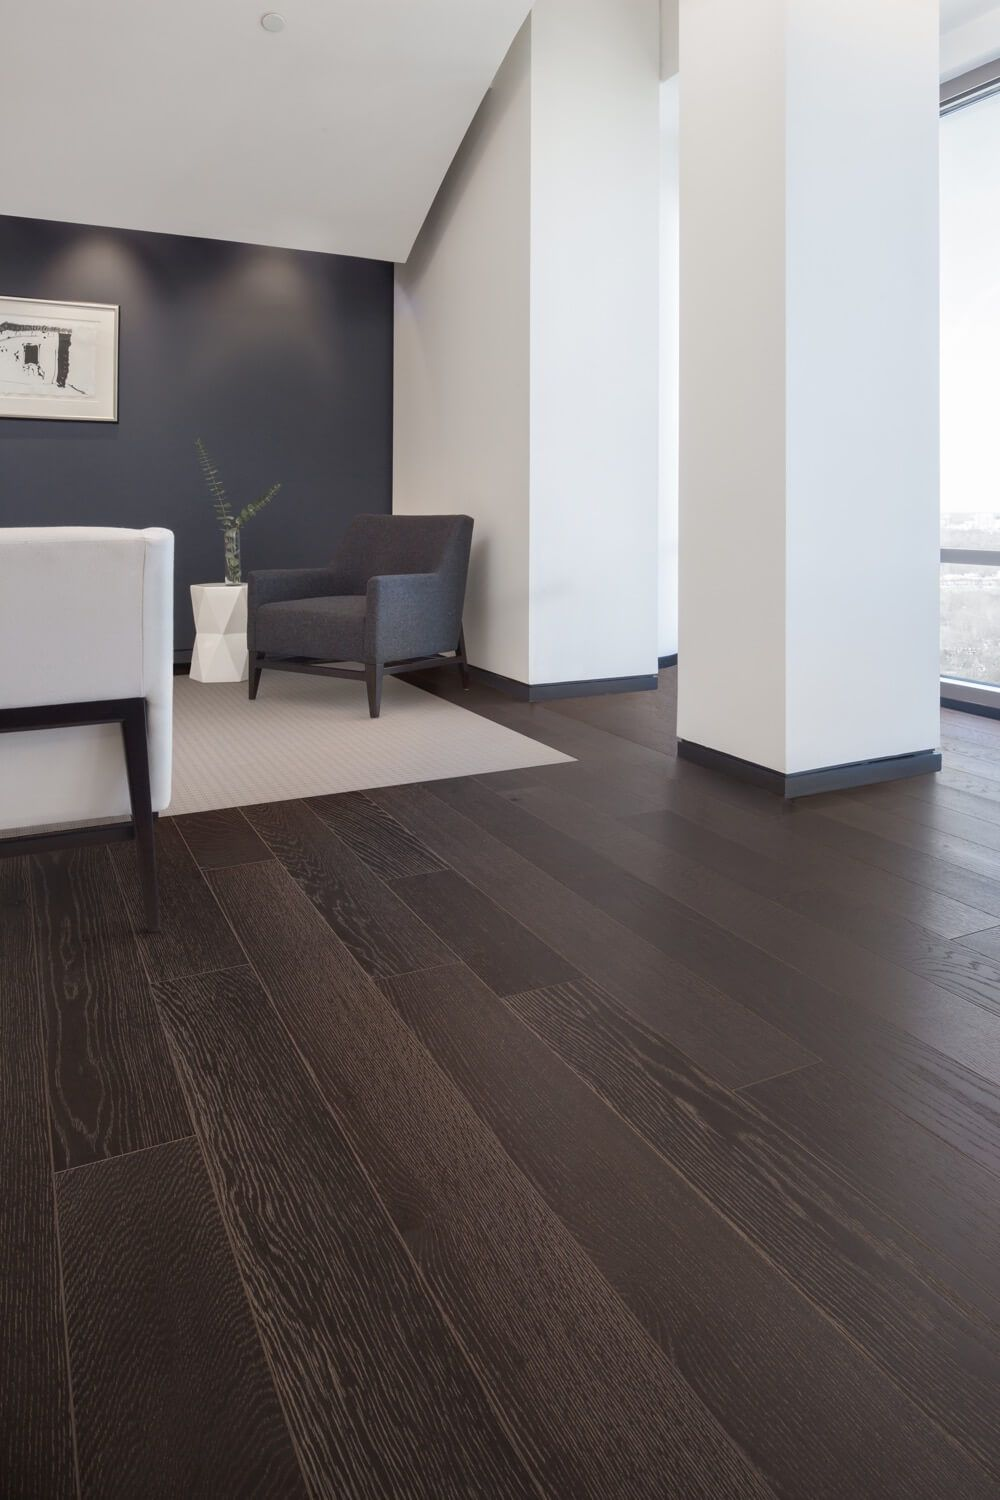 Commercial Flooring Supplier Jacksonville FL